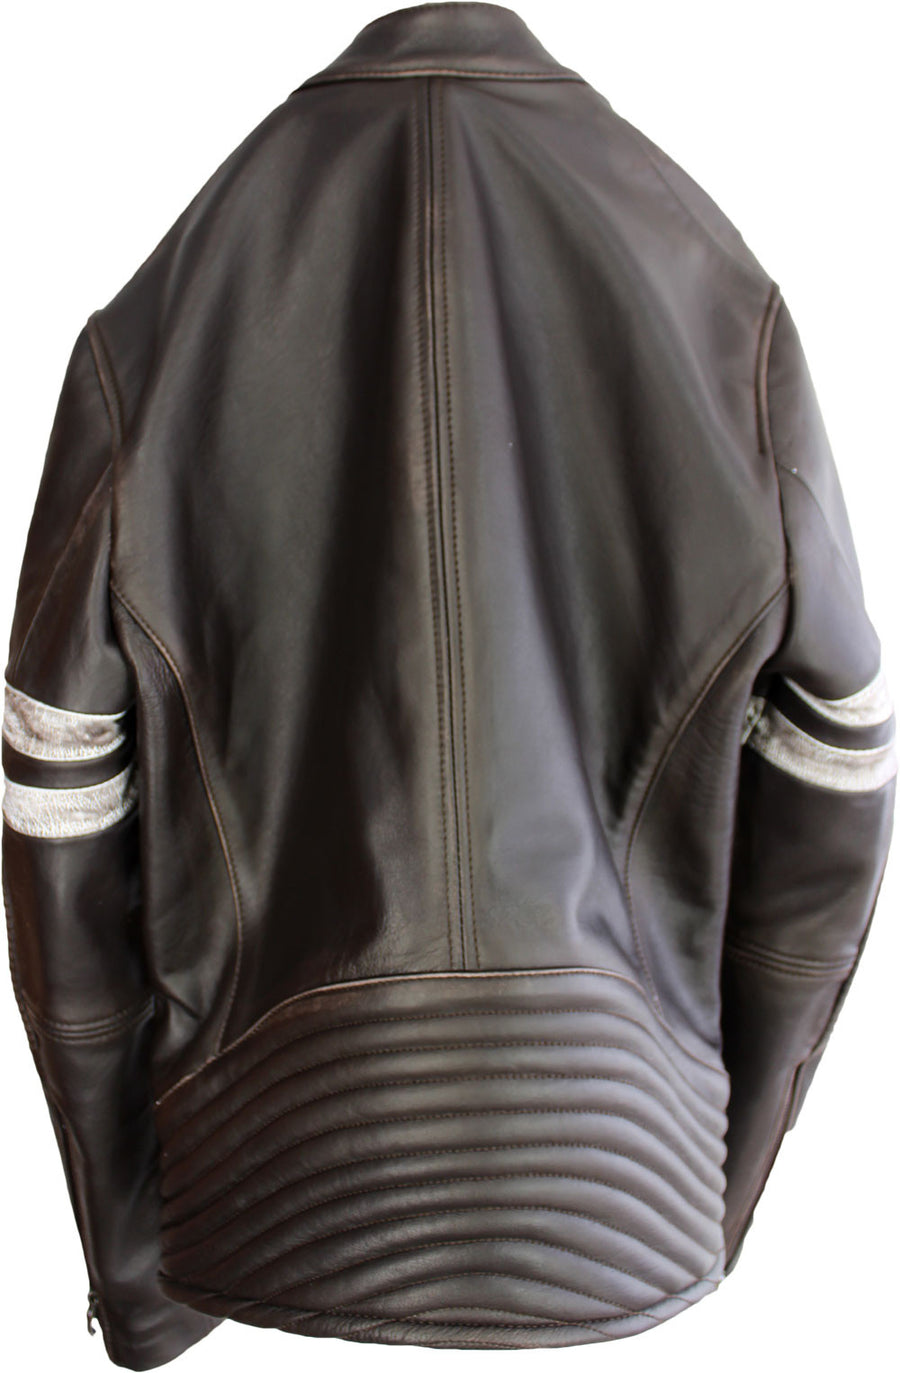 MUSTANG '18 Leather Jacket Distressed Brown - Cafe Racer Stripes - PDCollection Leatherwear - Online Shop